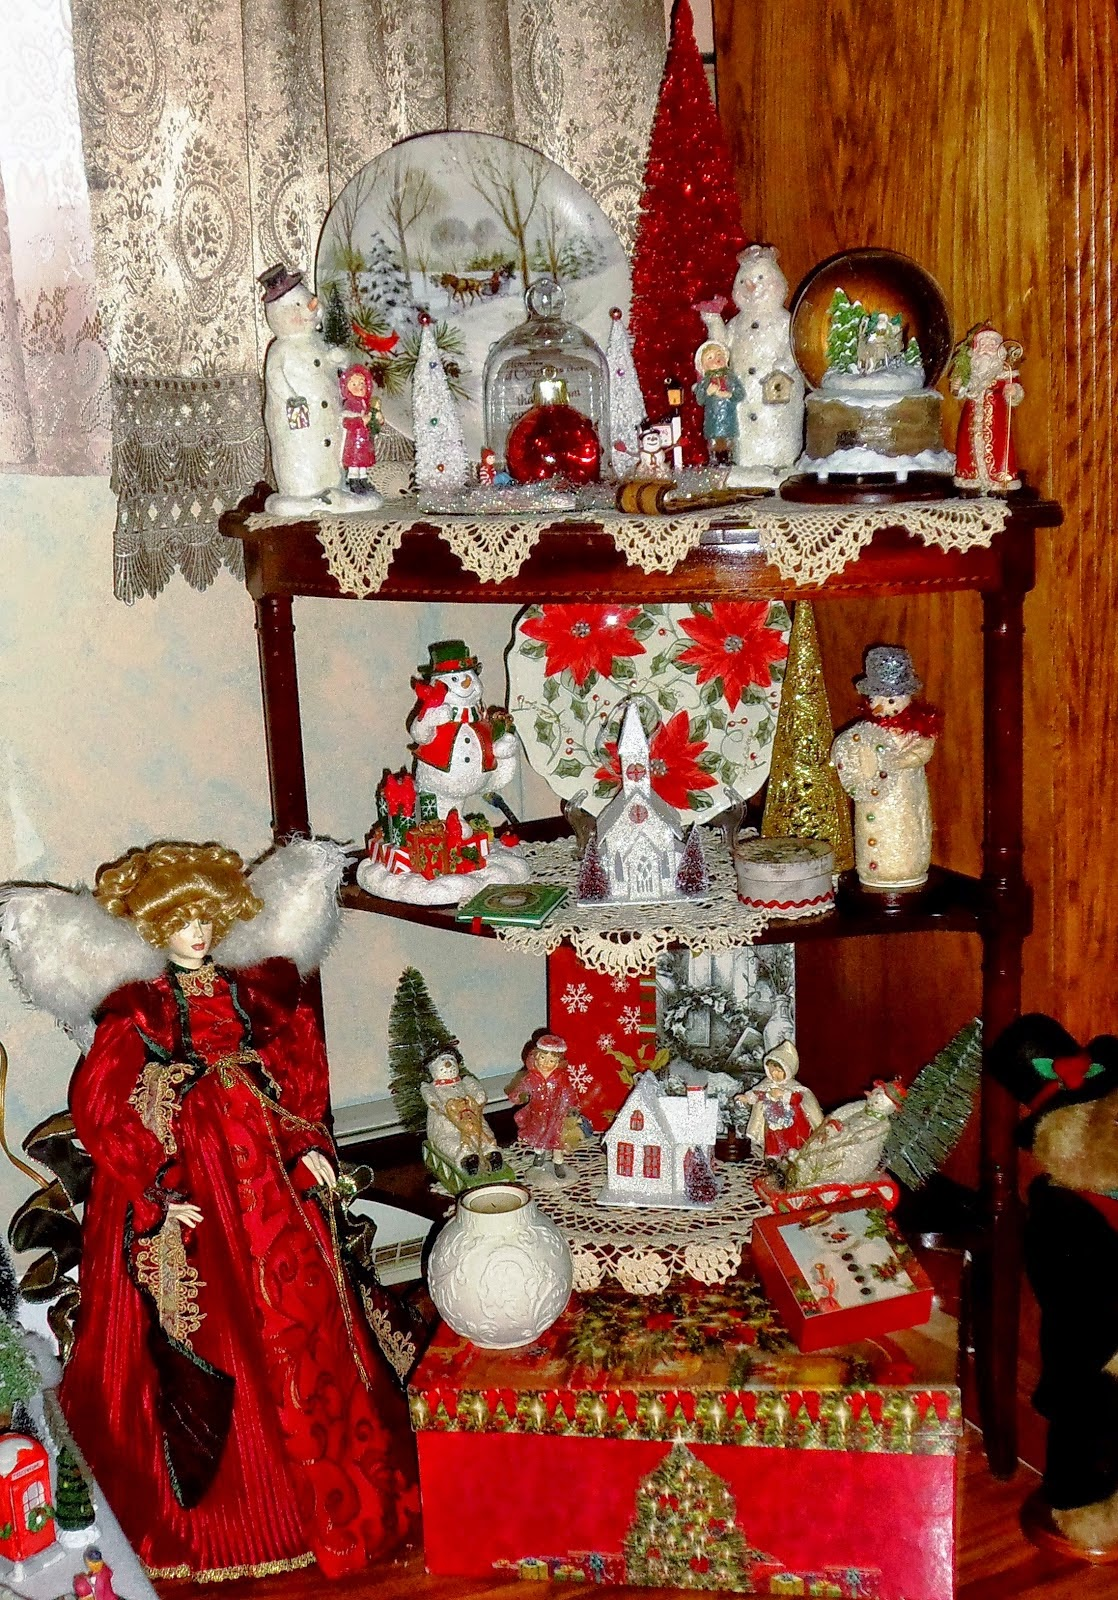 An Old Fashioned Christmas in the Other Half of the Living Room, Part 5 ,Christmas Home Tour 2014